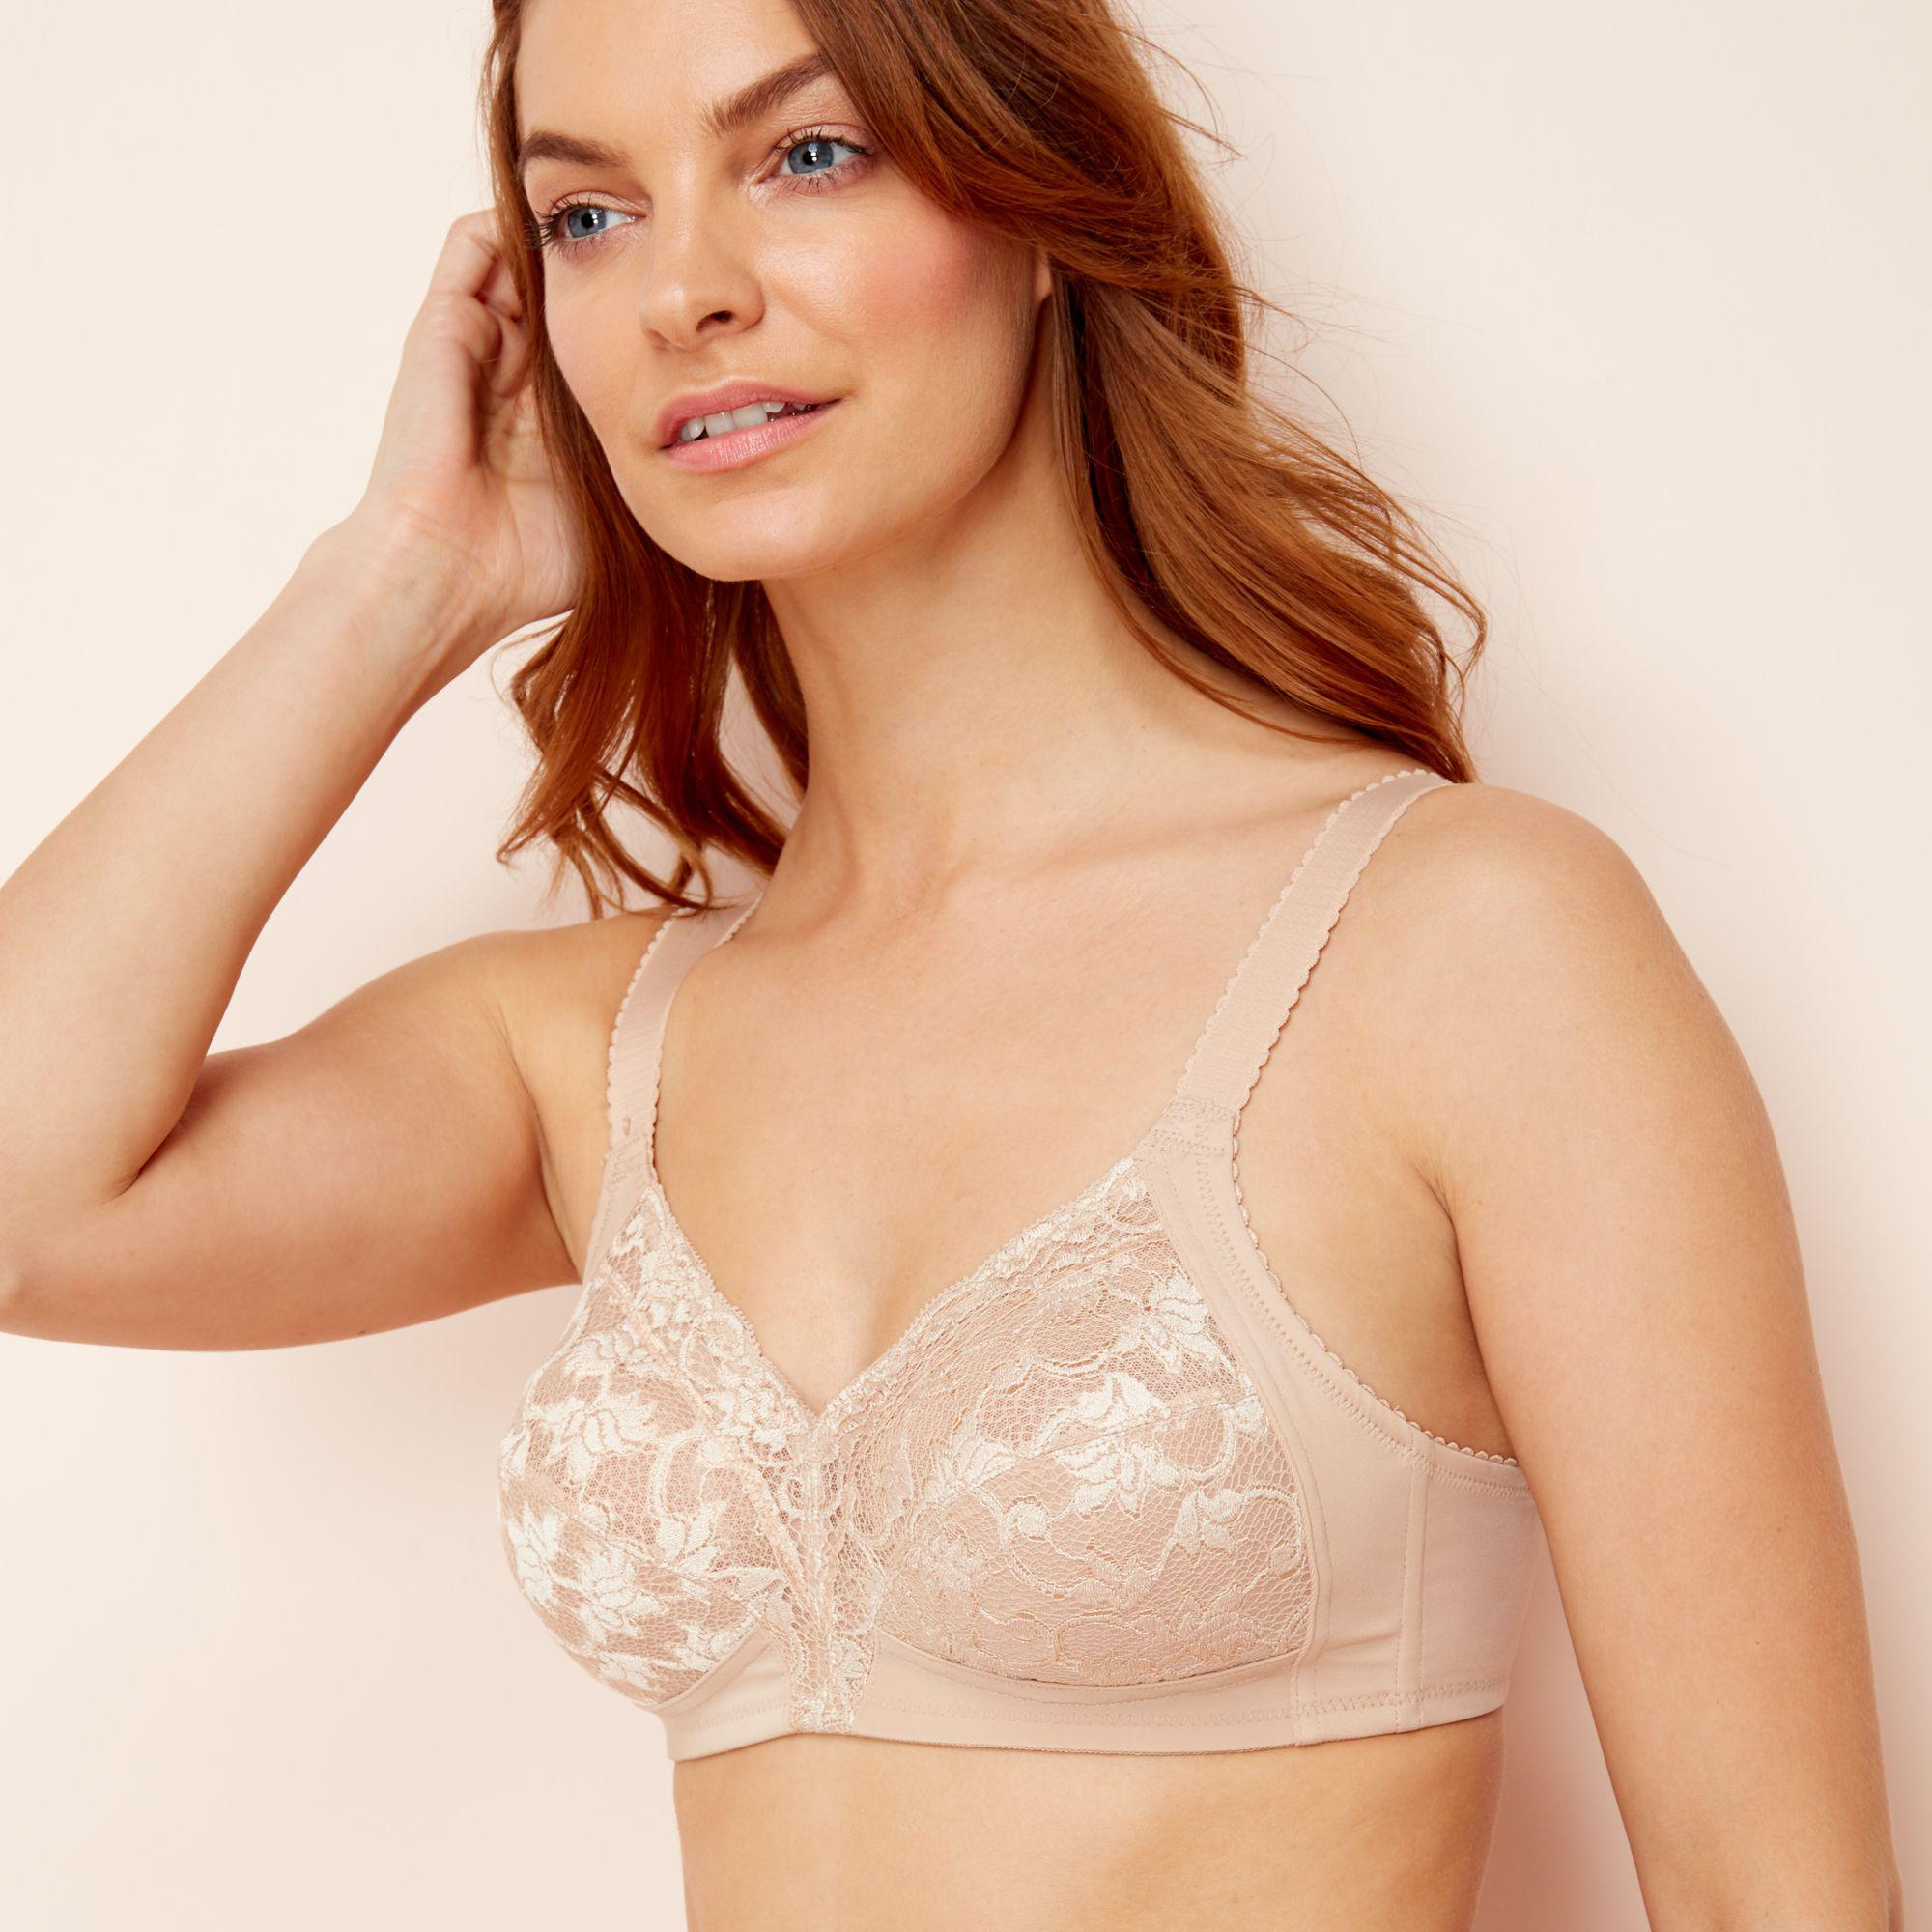 348a13b926 Triumph - Natural Lace  delicate Doreen  Non-wired Non-padded Full Cup.  View fullscreen